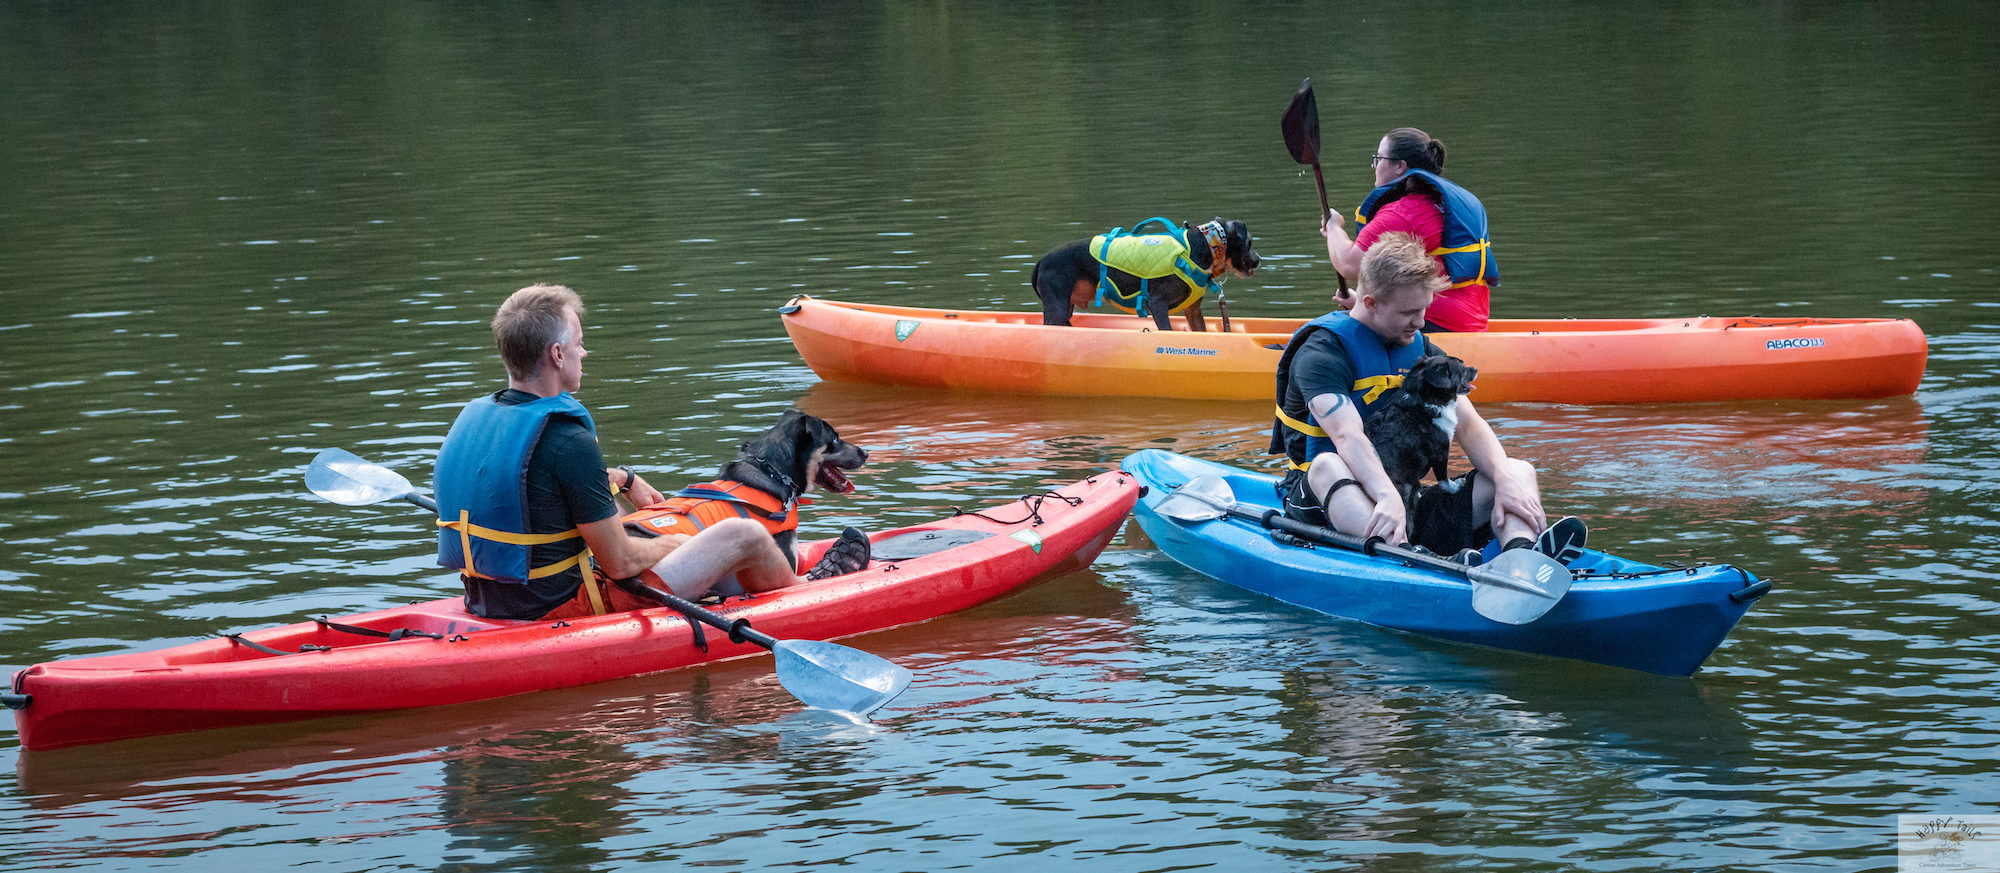 kayaking and SUP adventure in the Catawba River